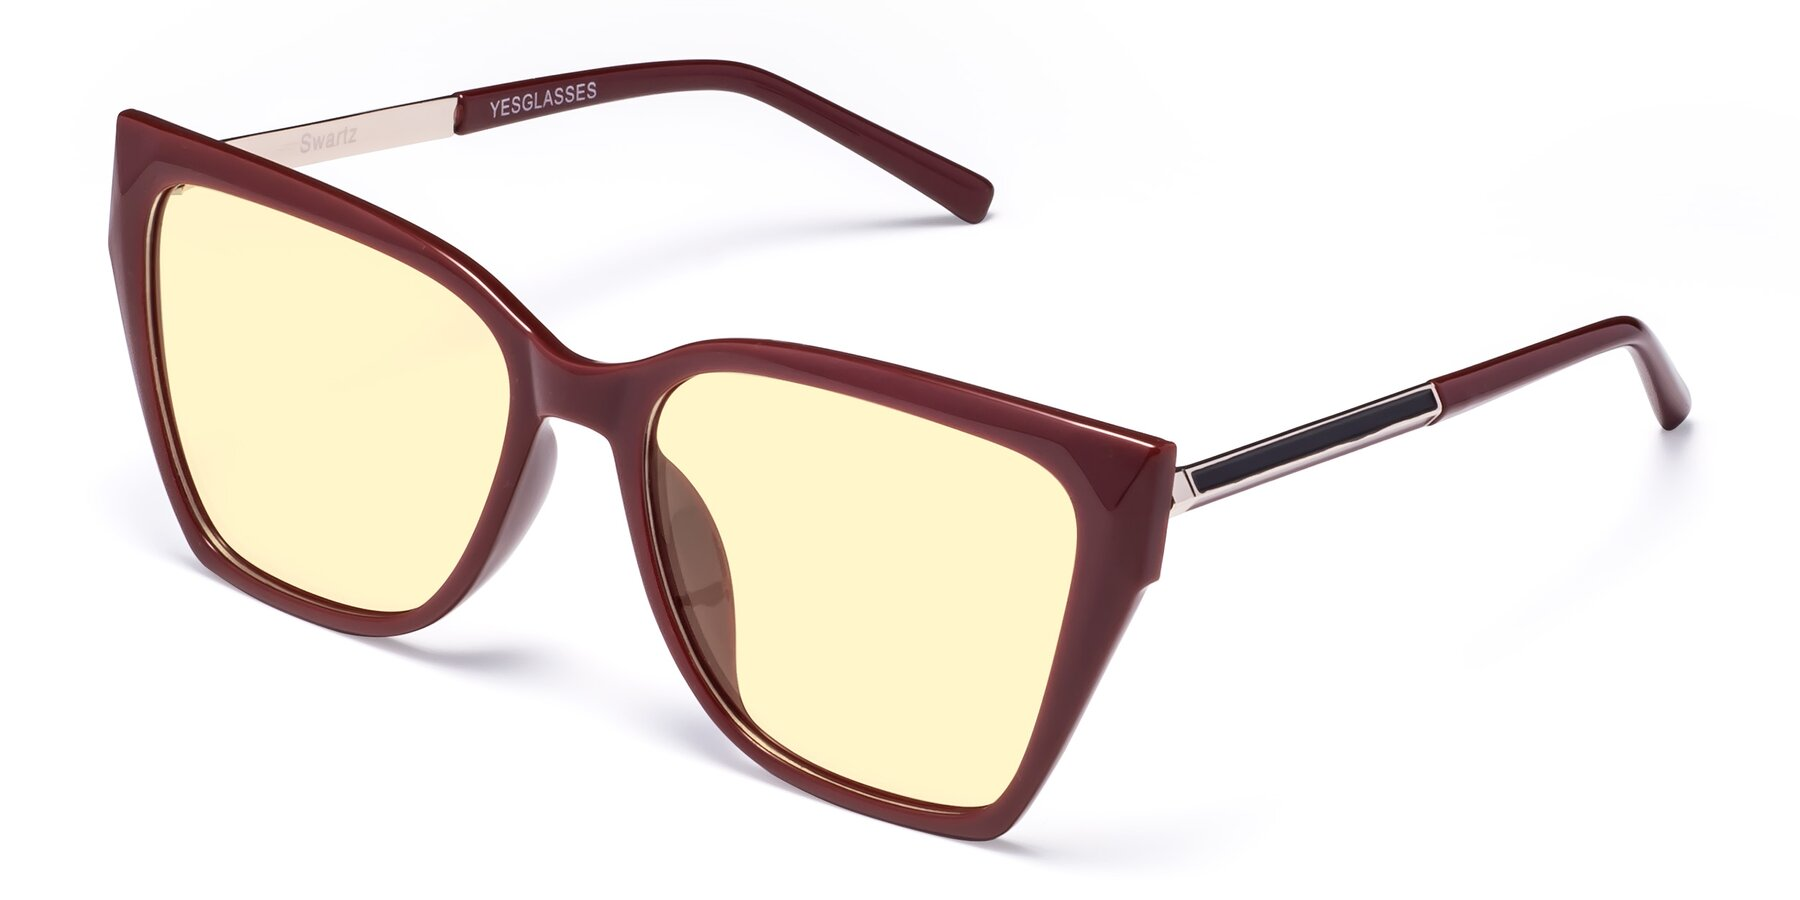 Angle of Swartz in Wine with Light Yellow Tinted Lenses